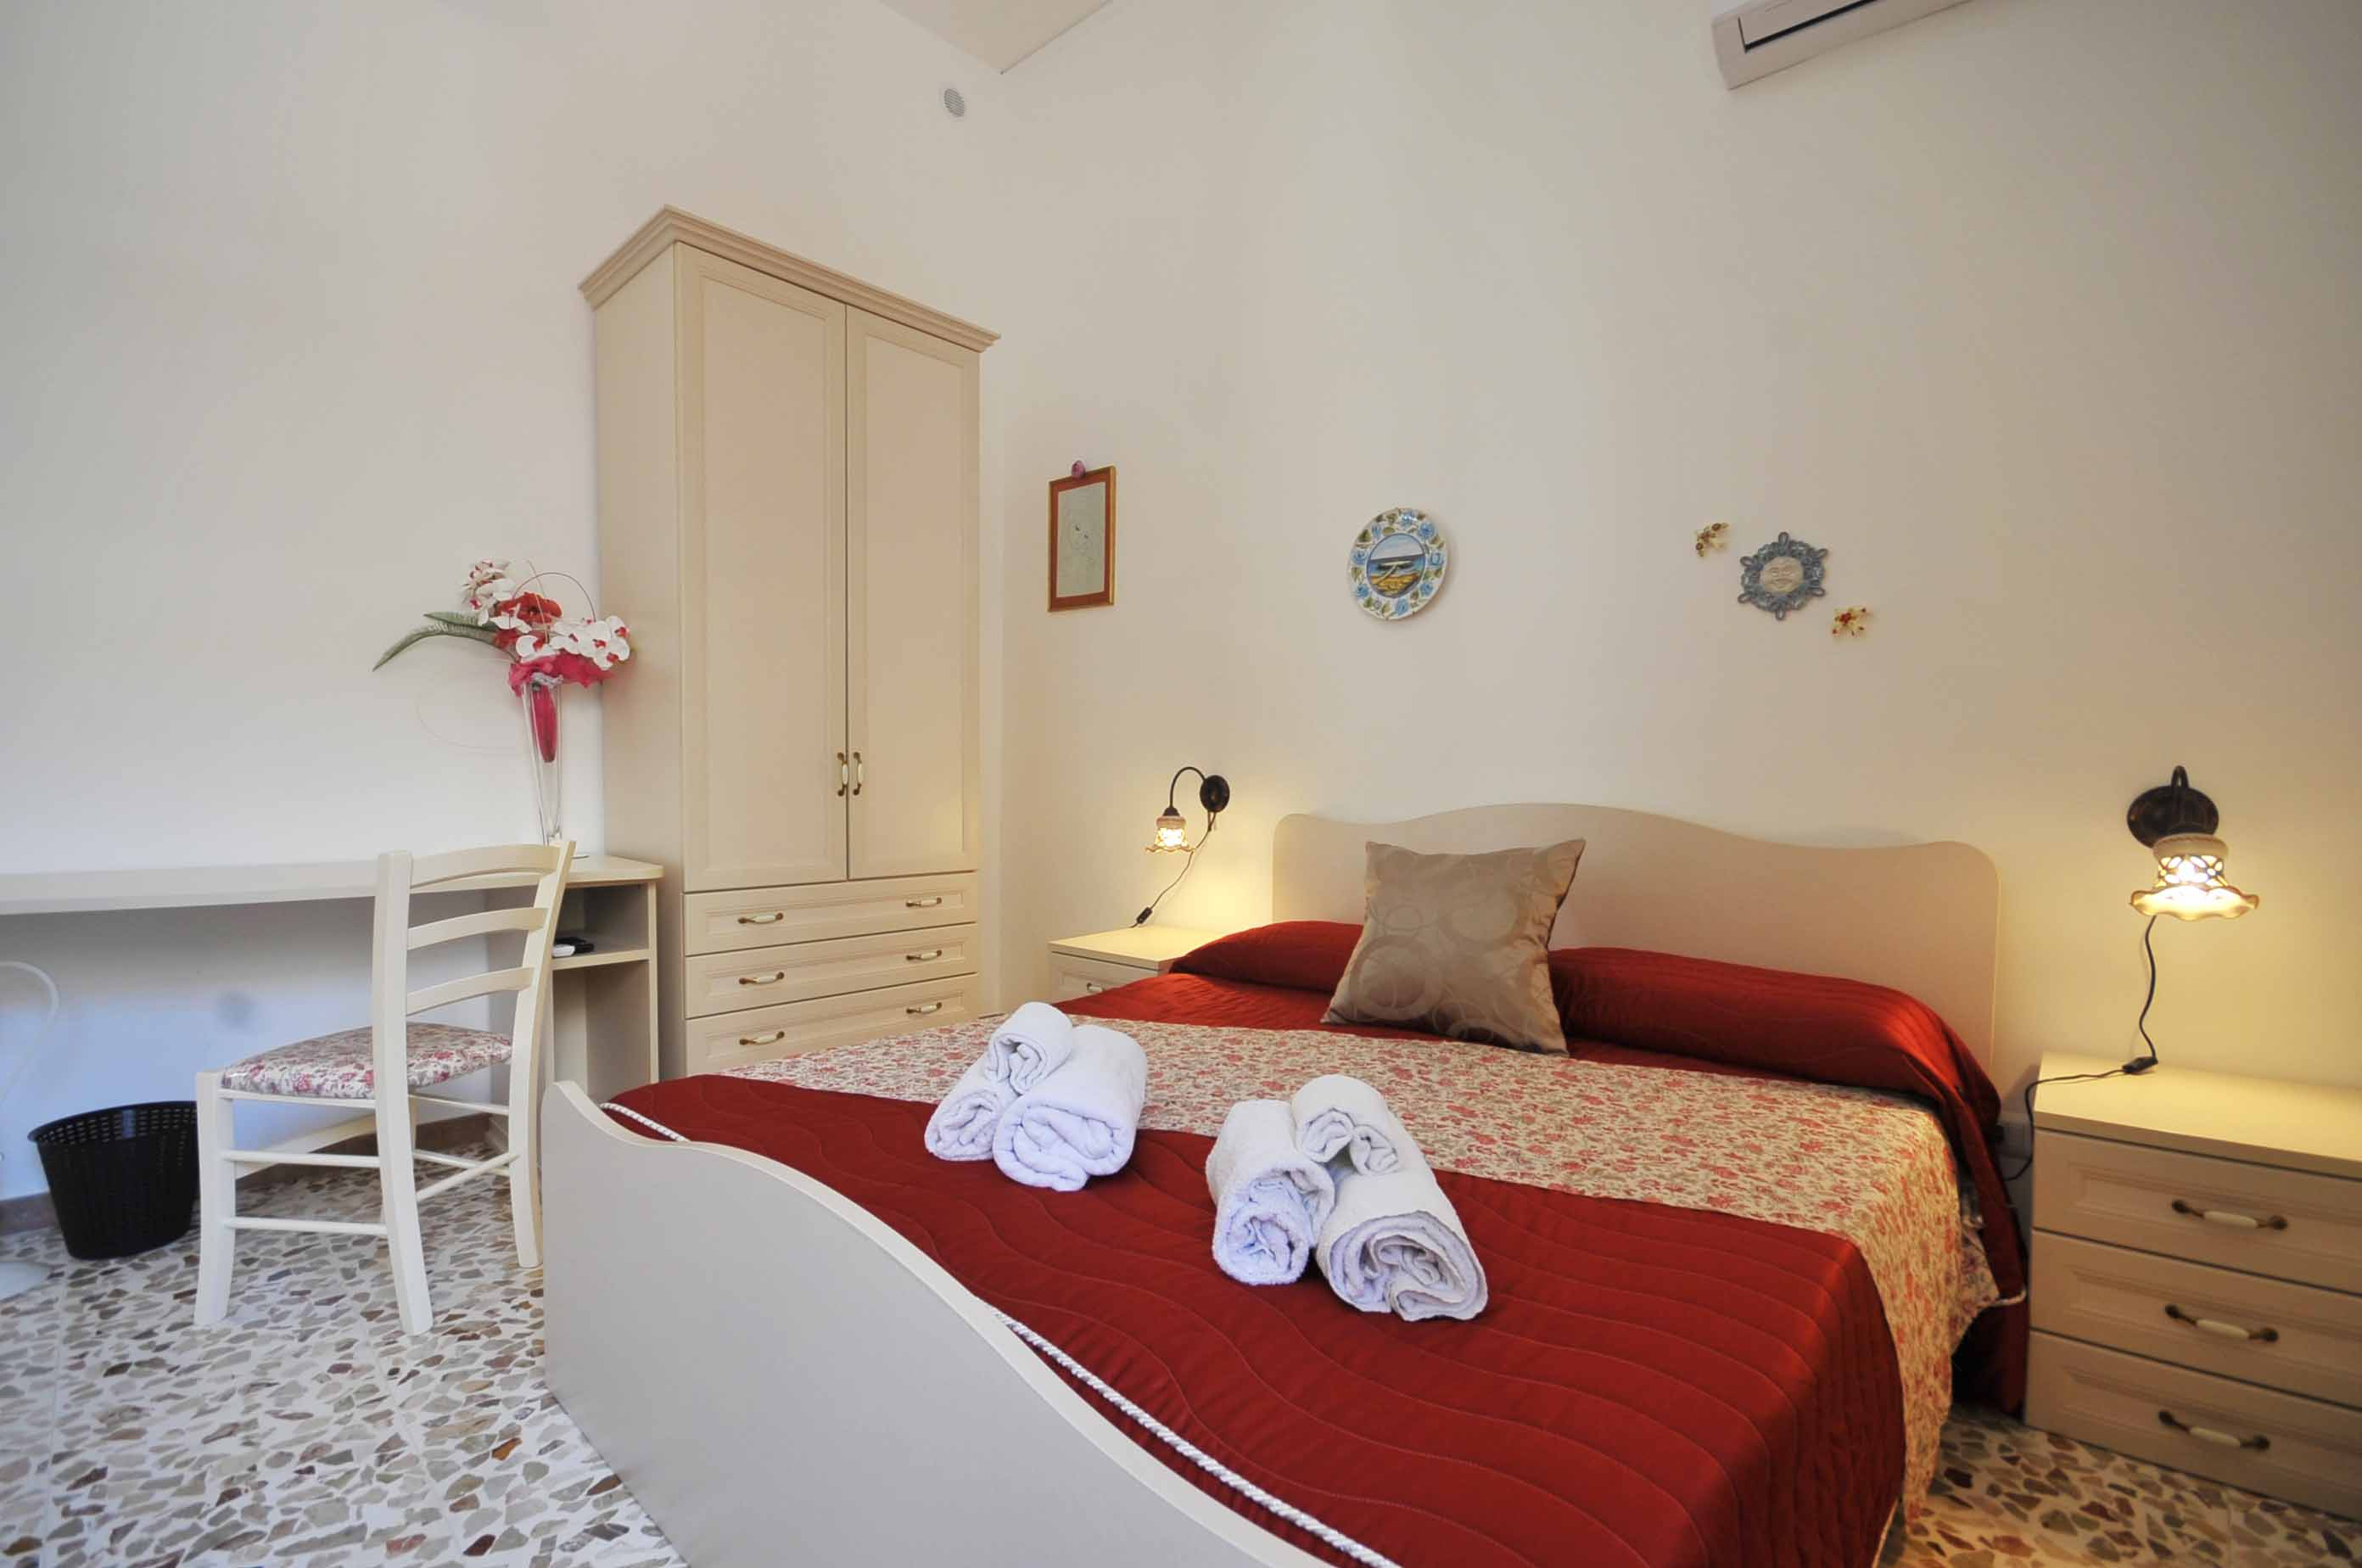 Athena_camera_familiare_B&B_Avola_siracusa_bed_and_breakfast_1